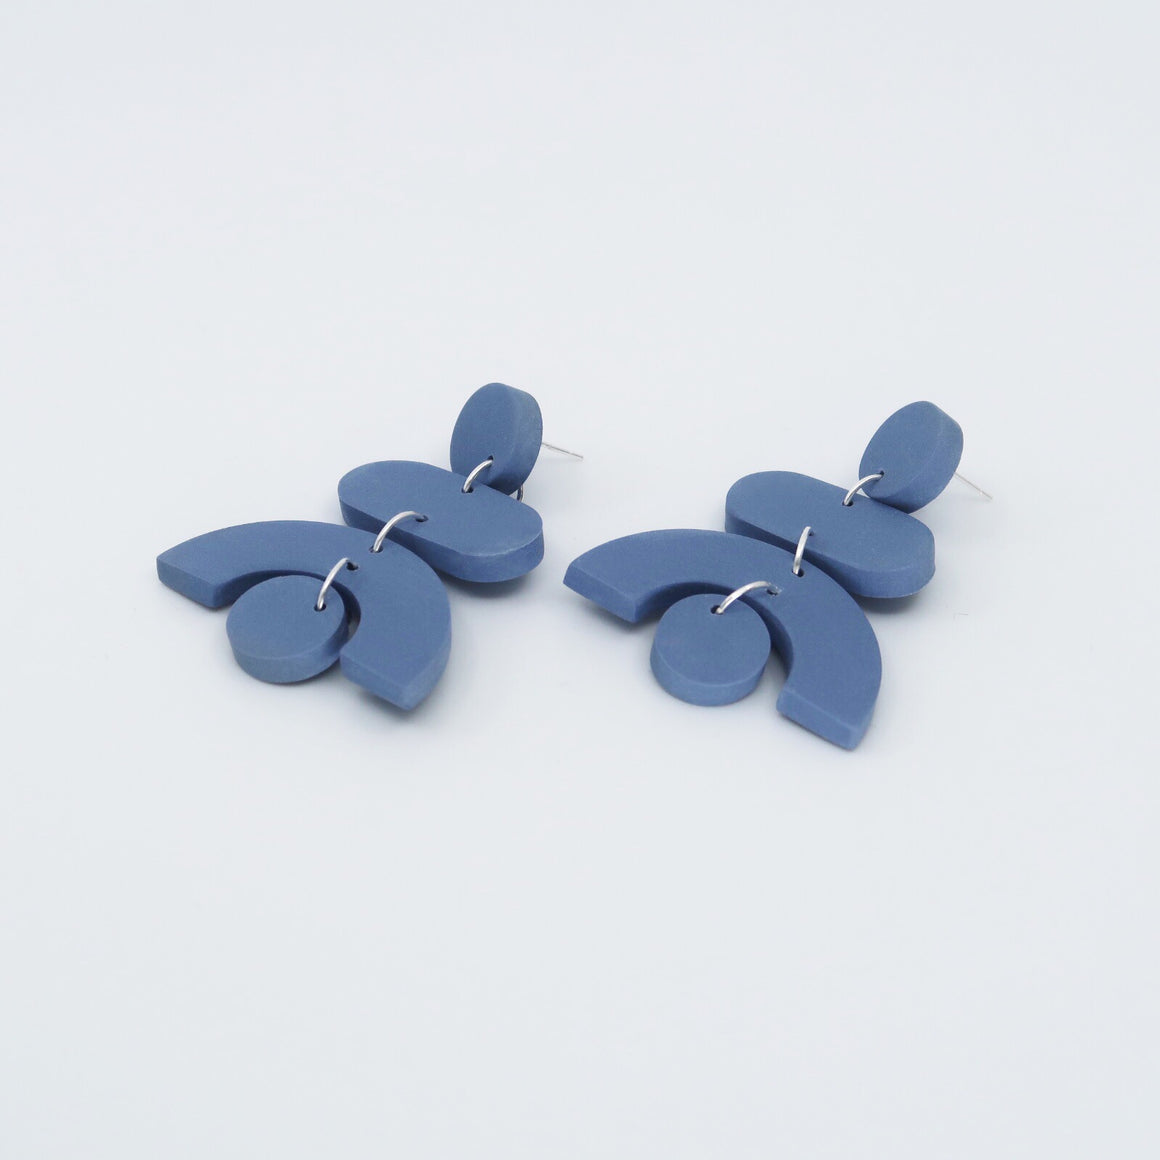 Pendulum Earrings - Dusty Blue